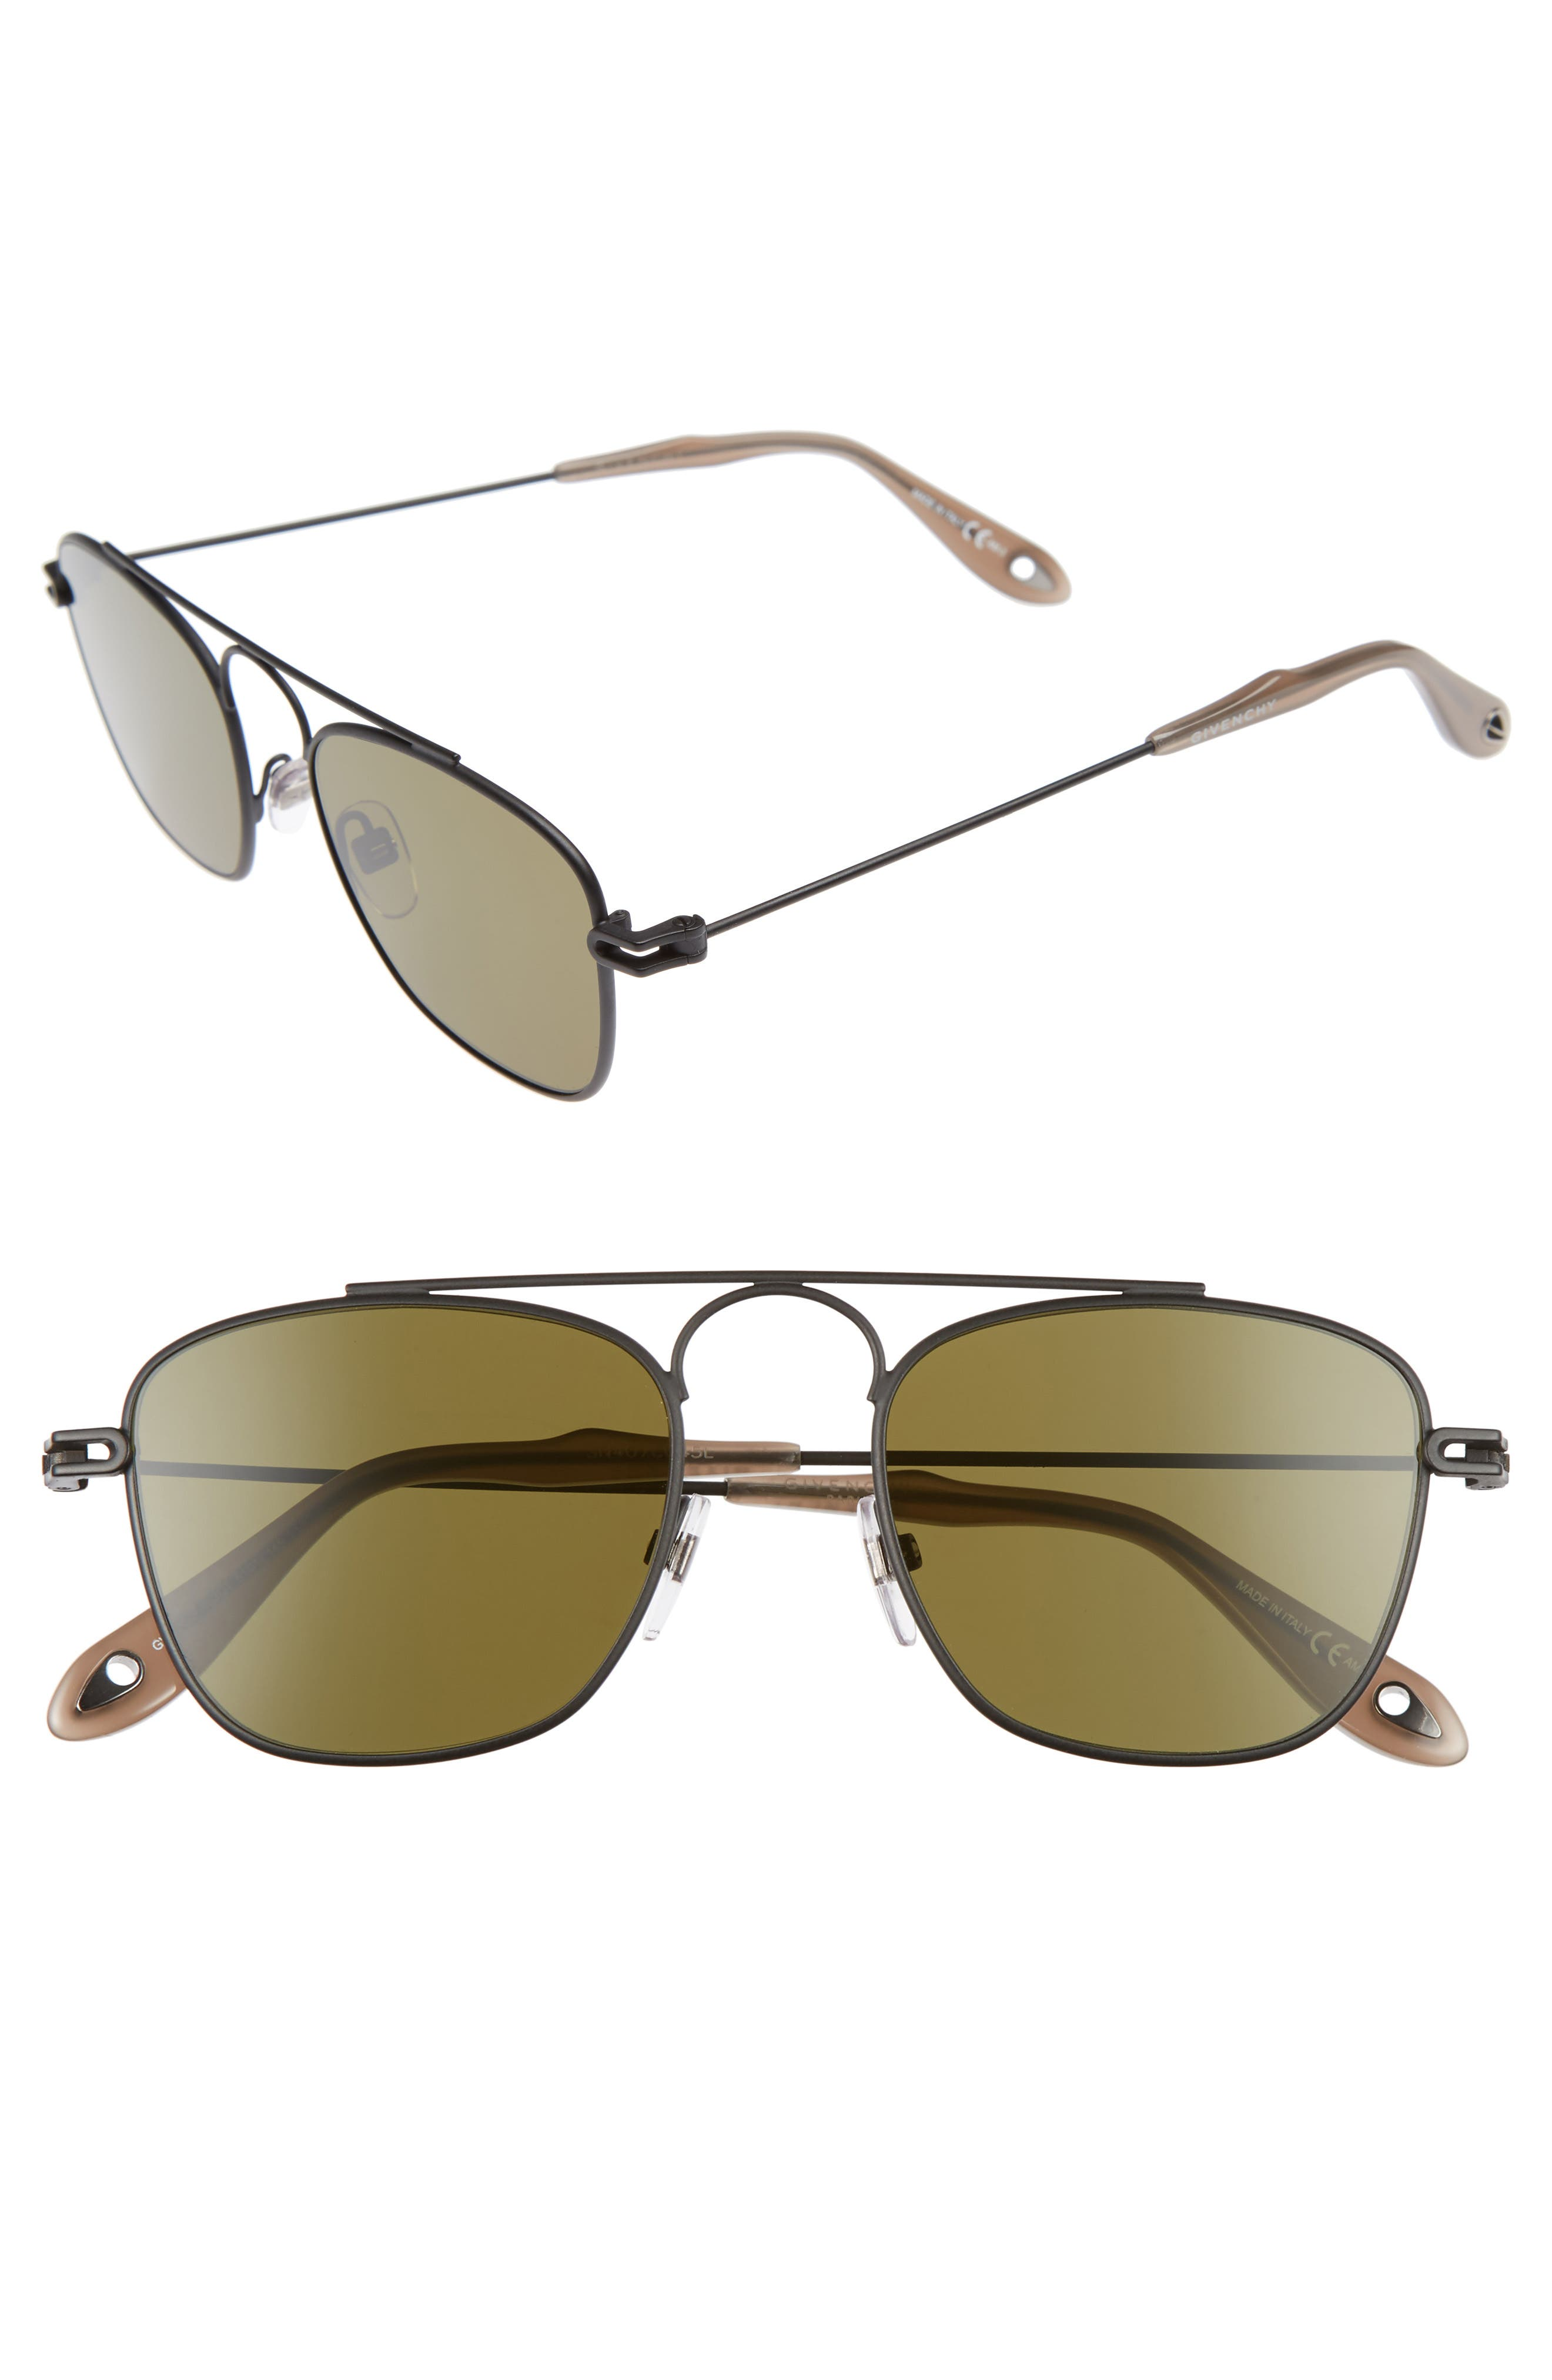 Givenchy 51mm Navigator Sunglasses